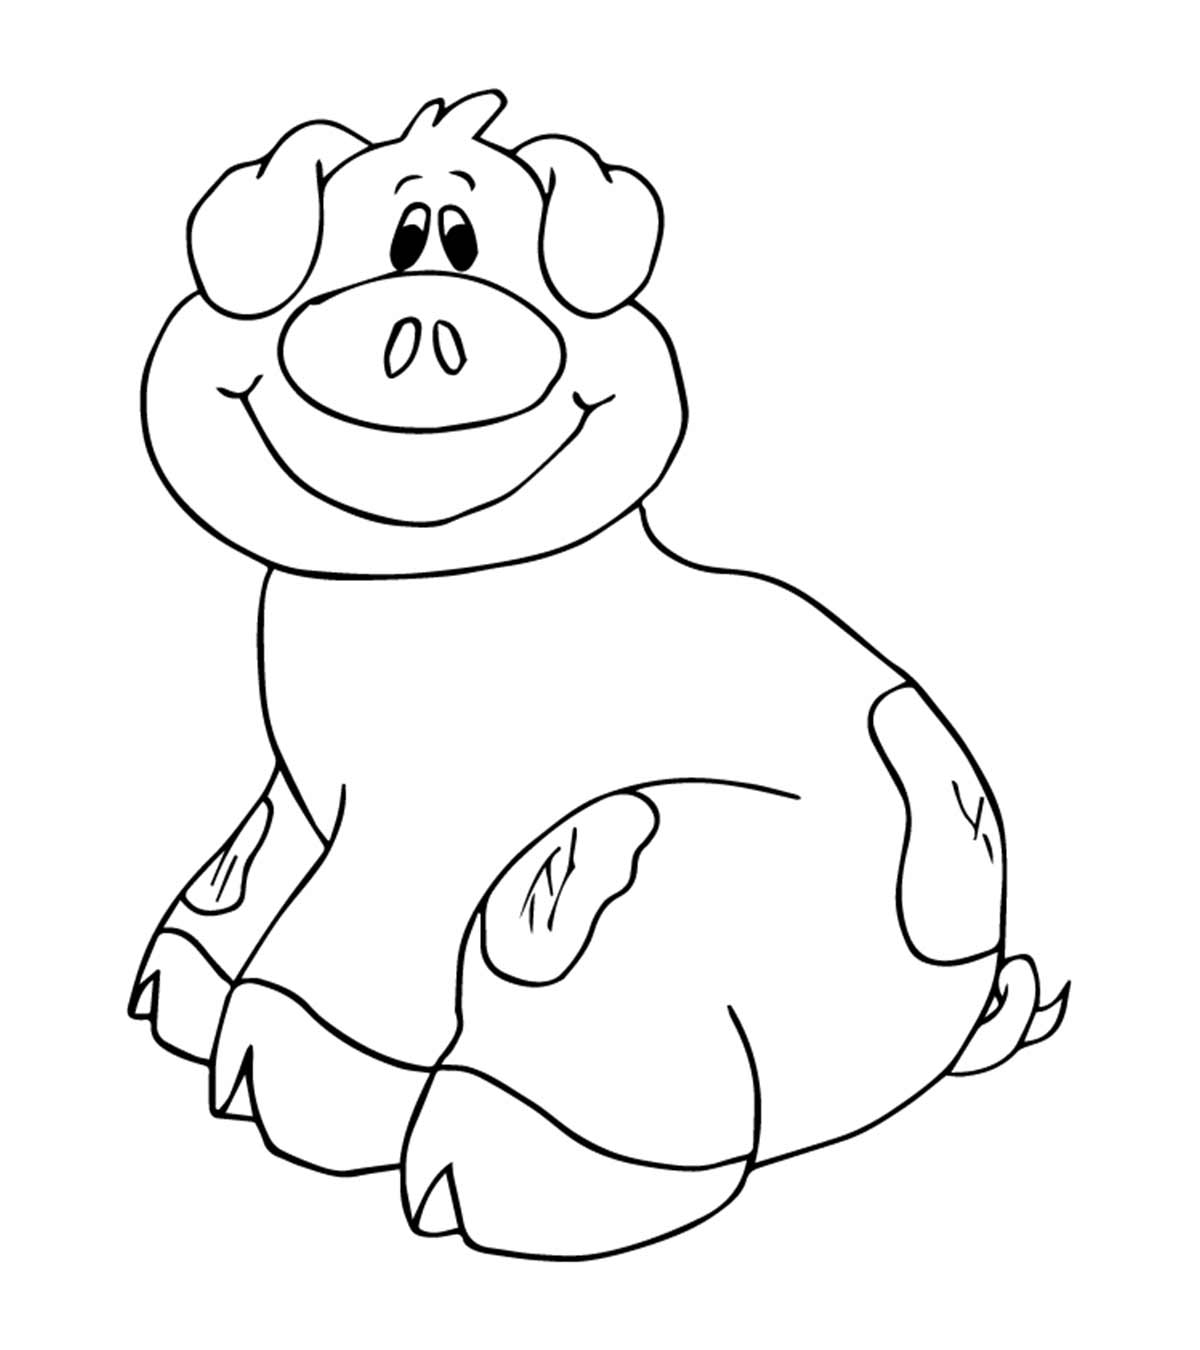 Top 20 Pig Coloring Pages Your Toddler Will Love 1